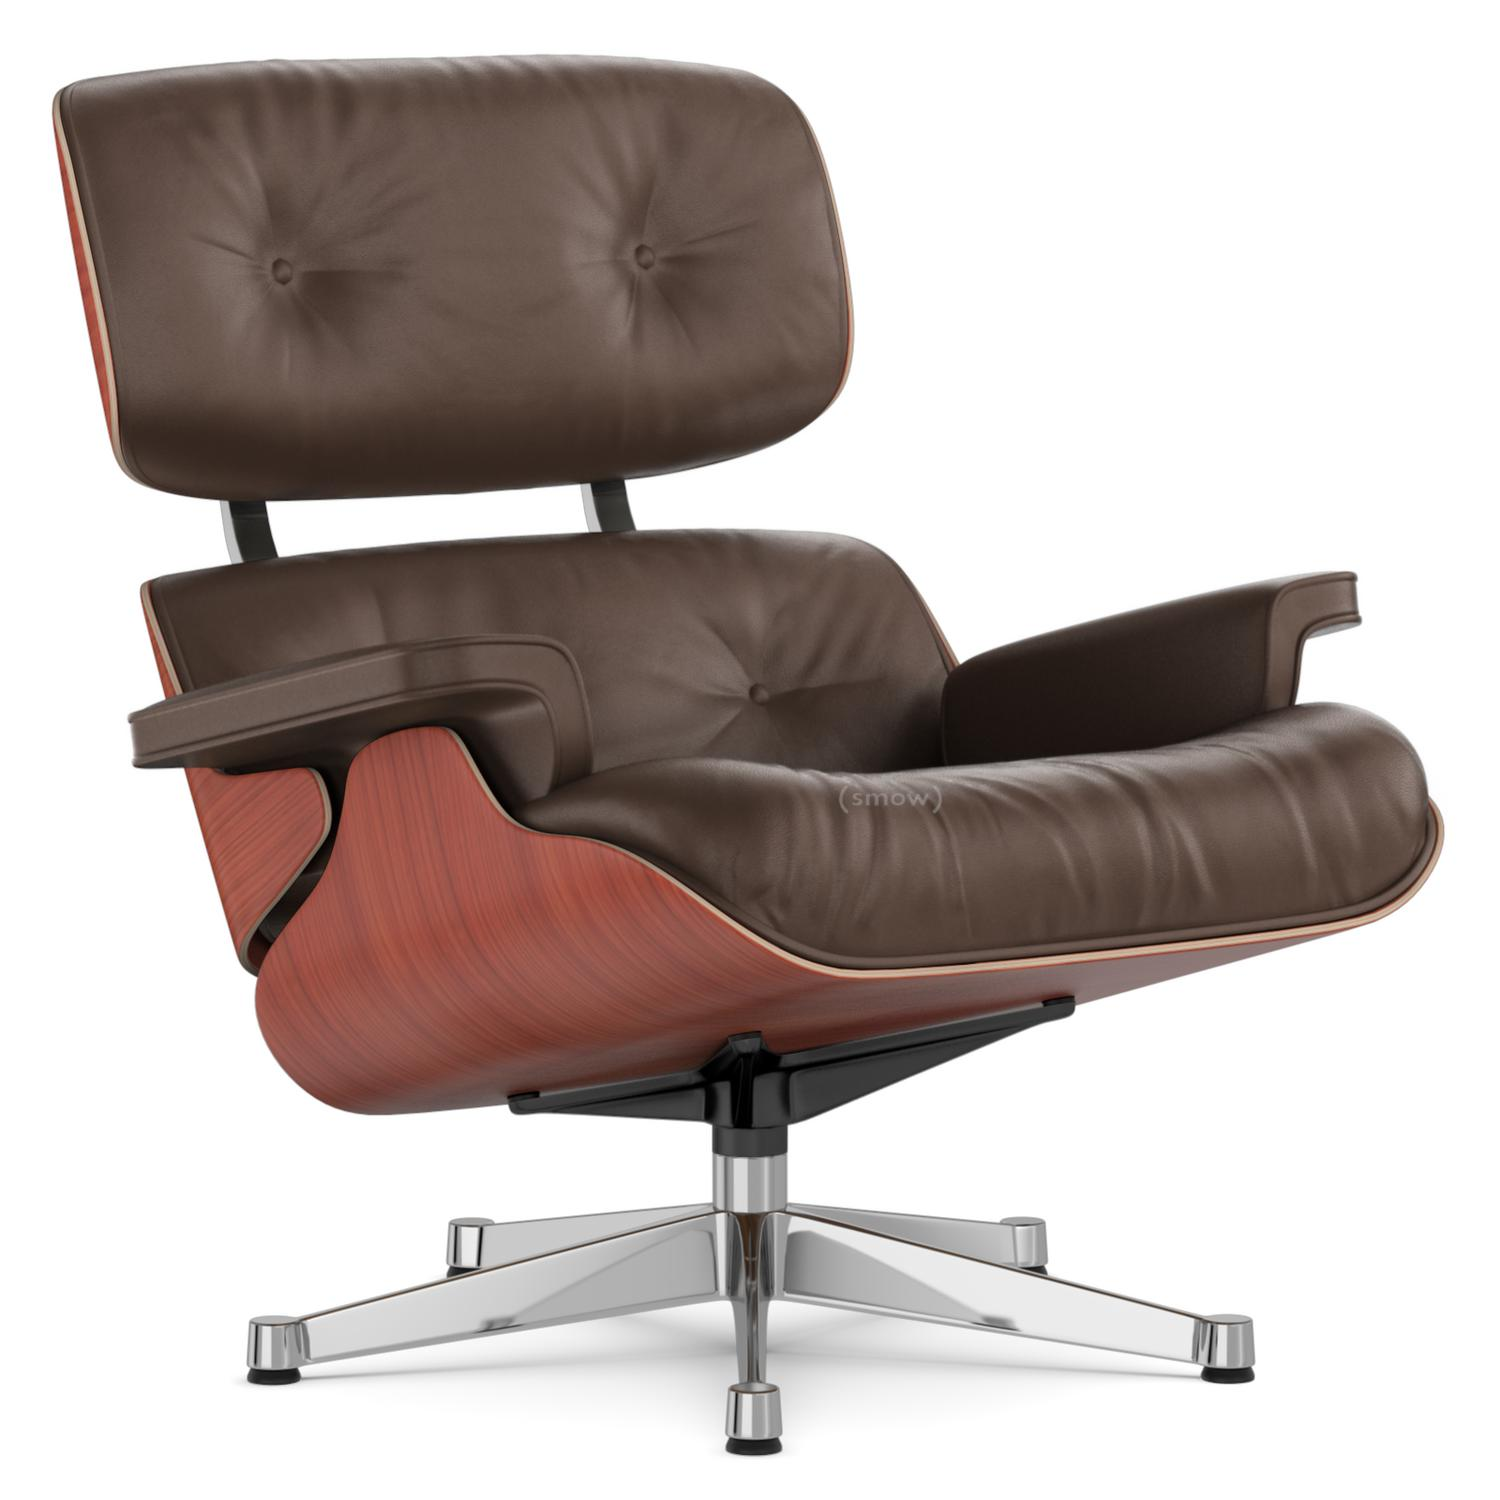 vitra lounge chair cherry brown 89 cm aluminium chrome. Black Bedroom Furniture Sets. Home Design Ideas